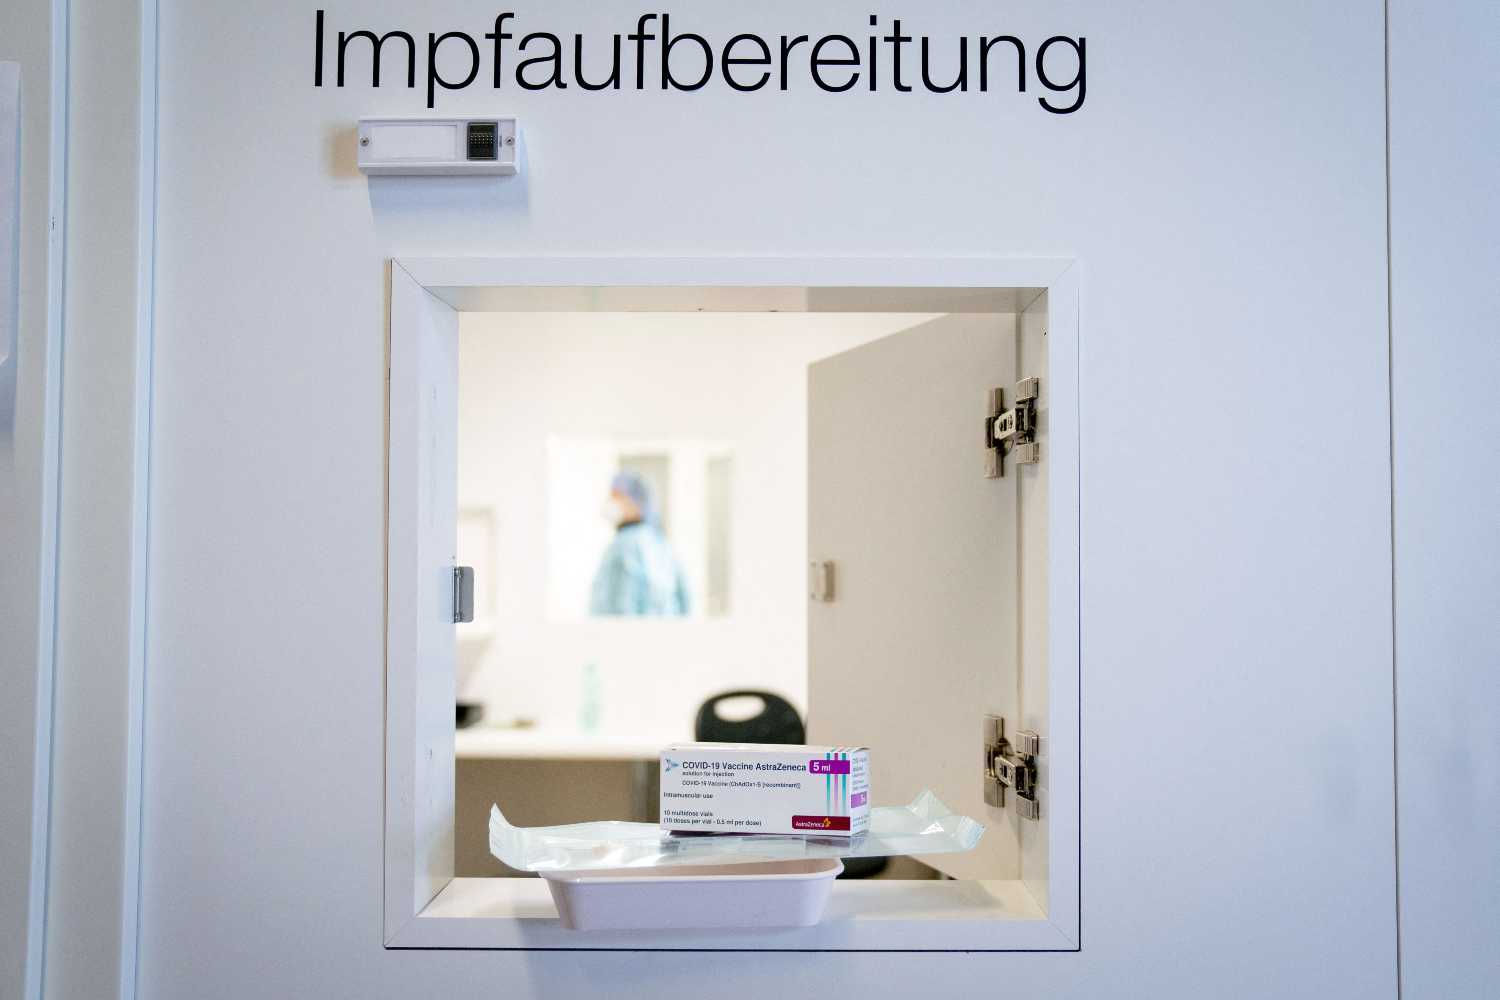 Austria orders another six million vaccine doses